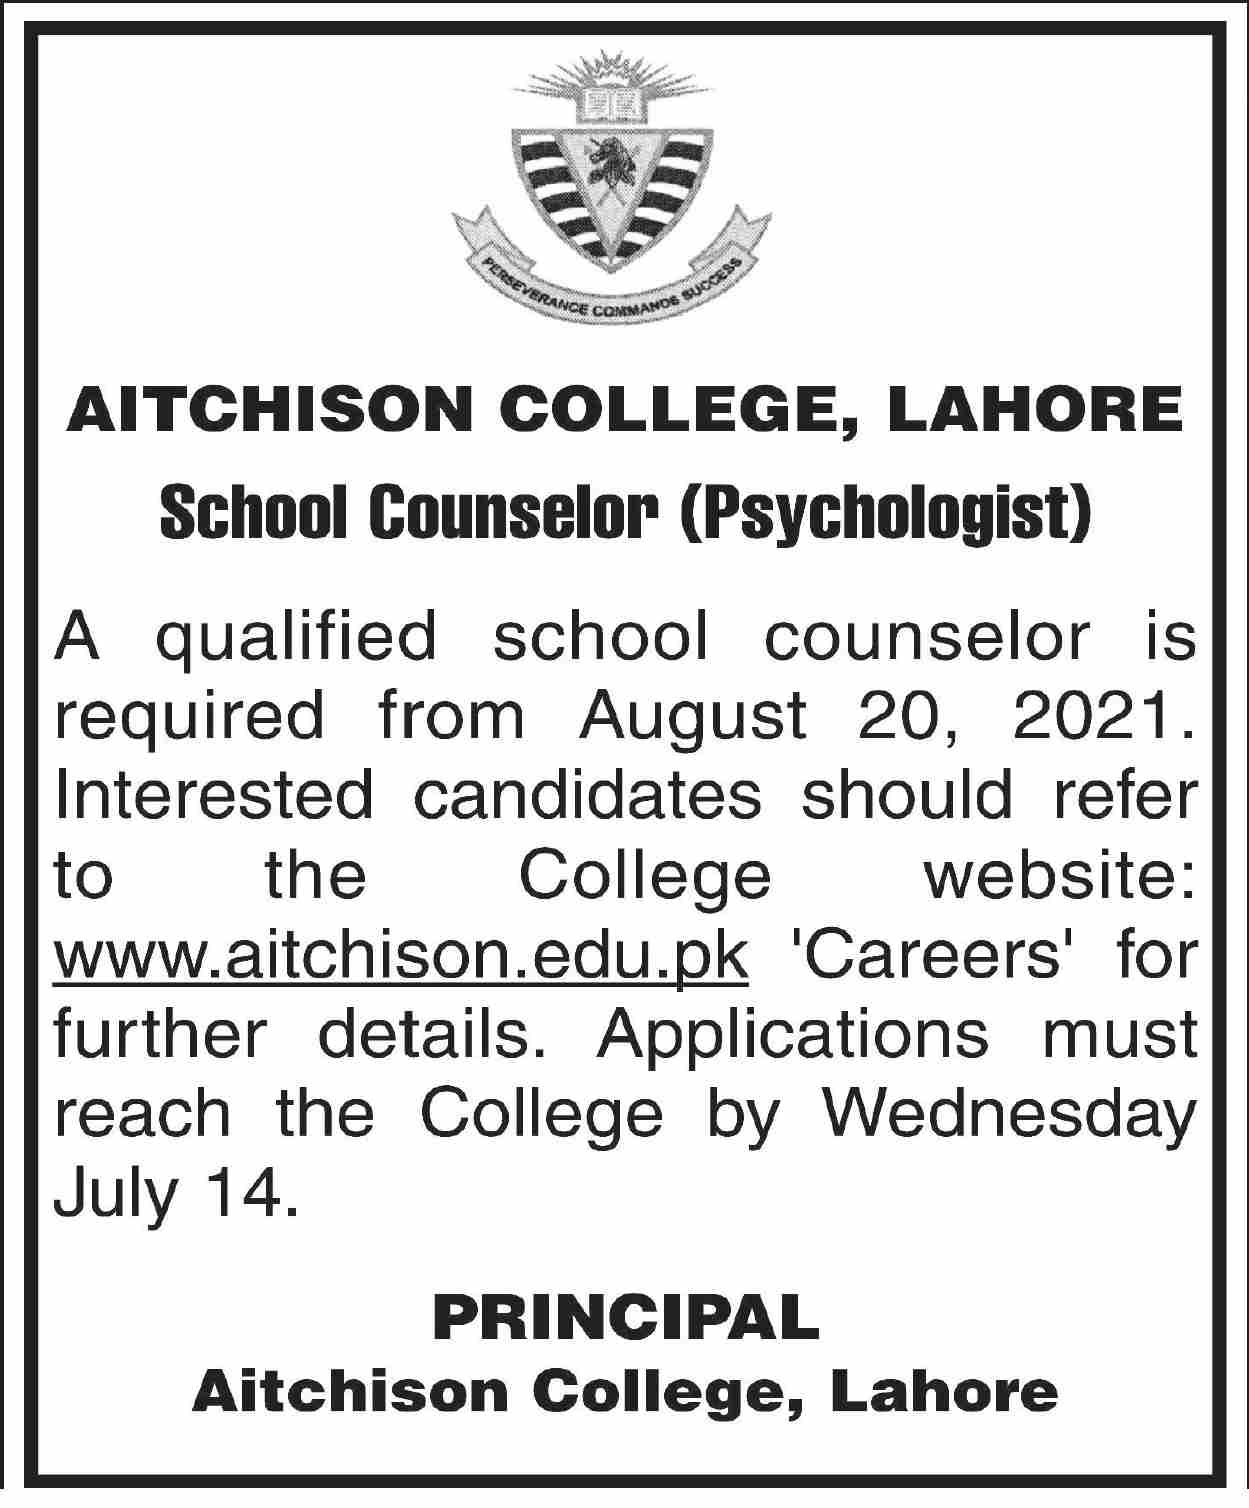 Aitchison College Lahore Jobs June 2021 for School Counselor